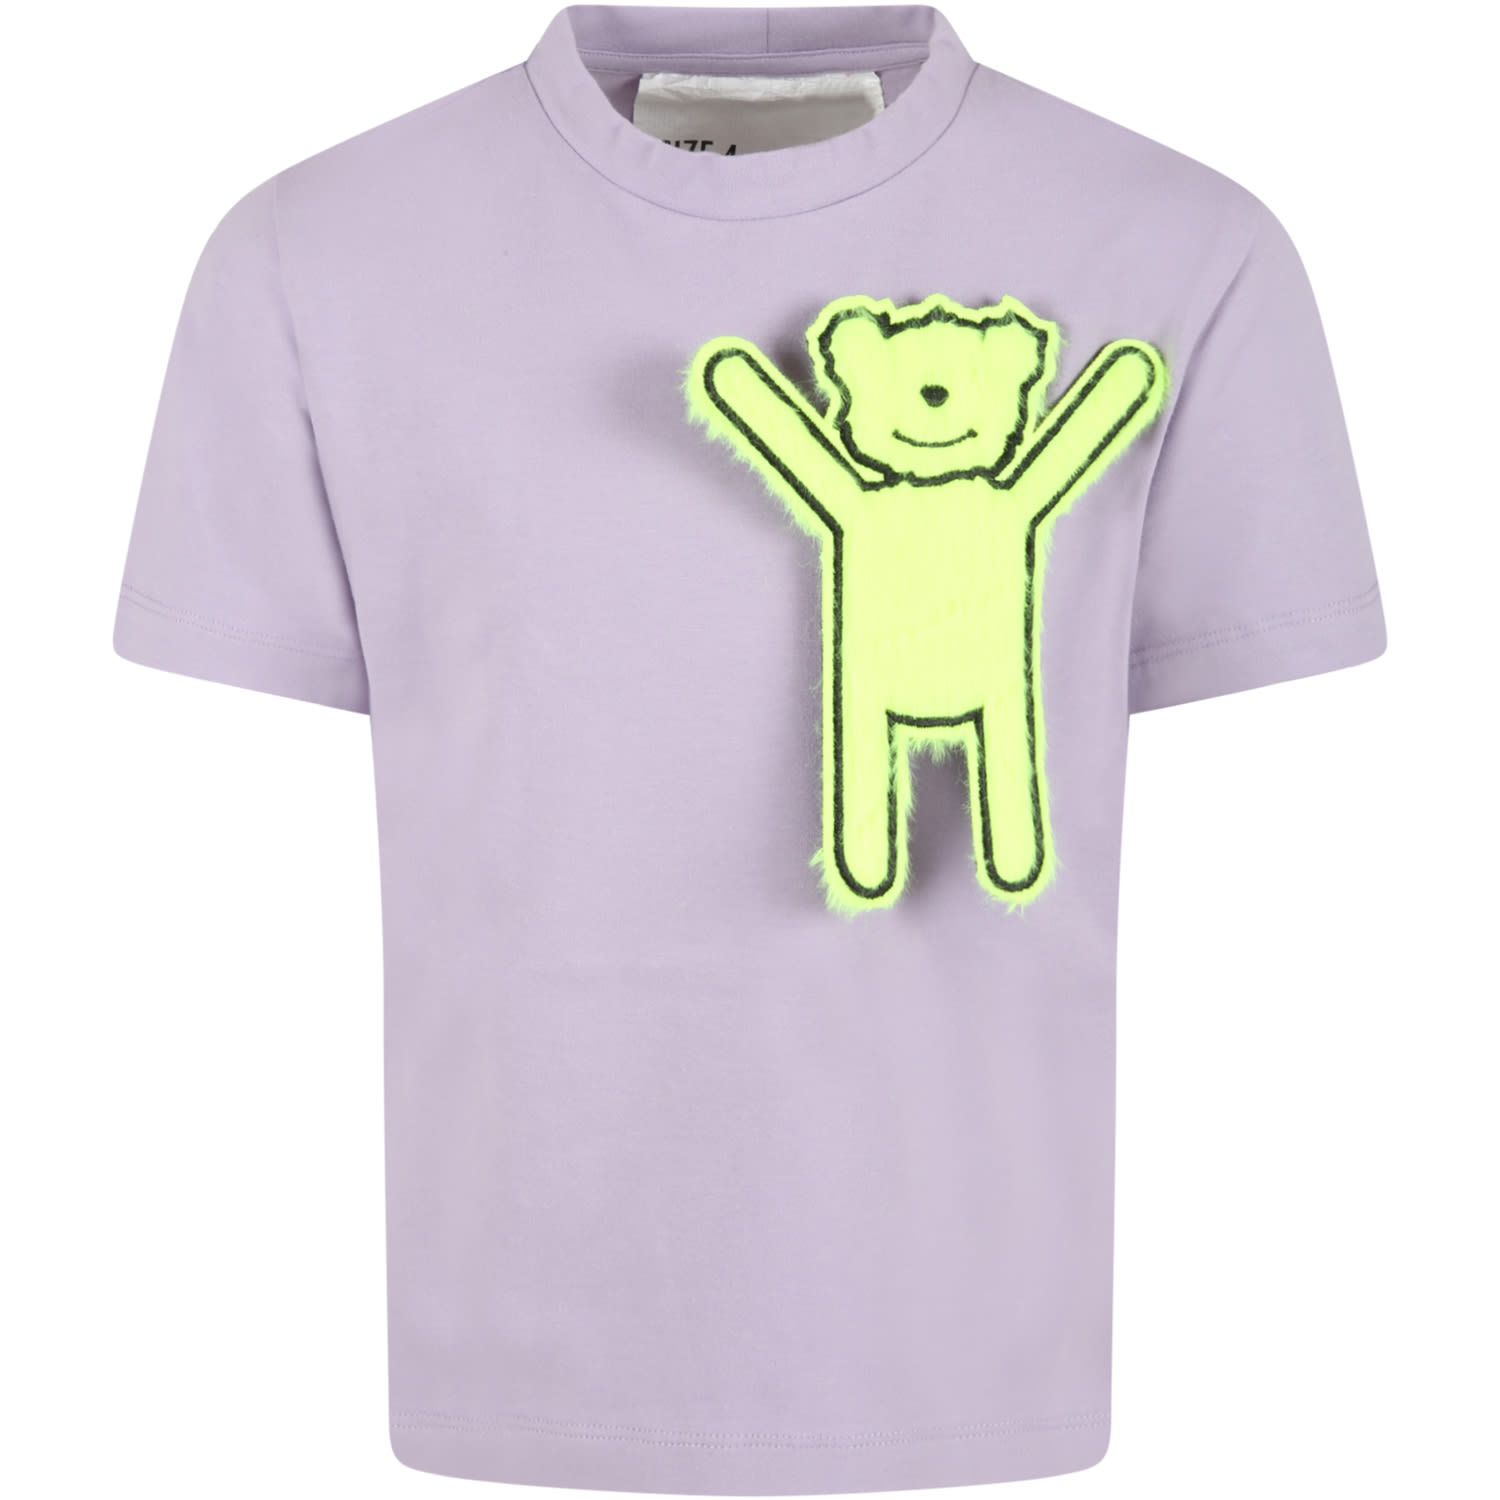 Lilac T-shirt For Kids With Neon Yellow Patch